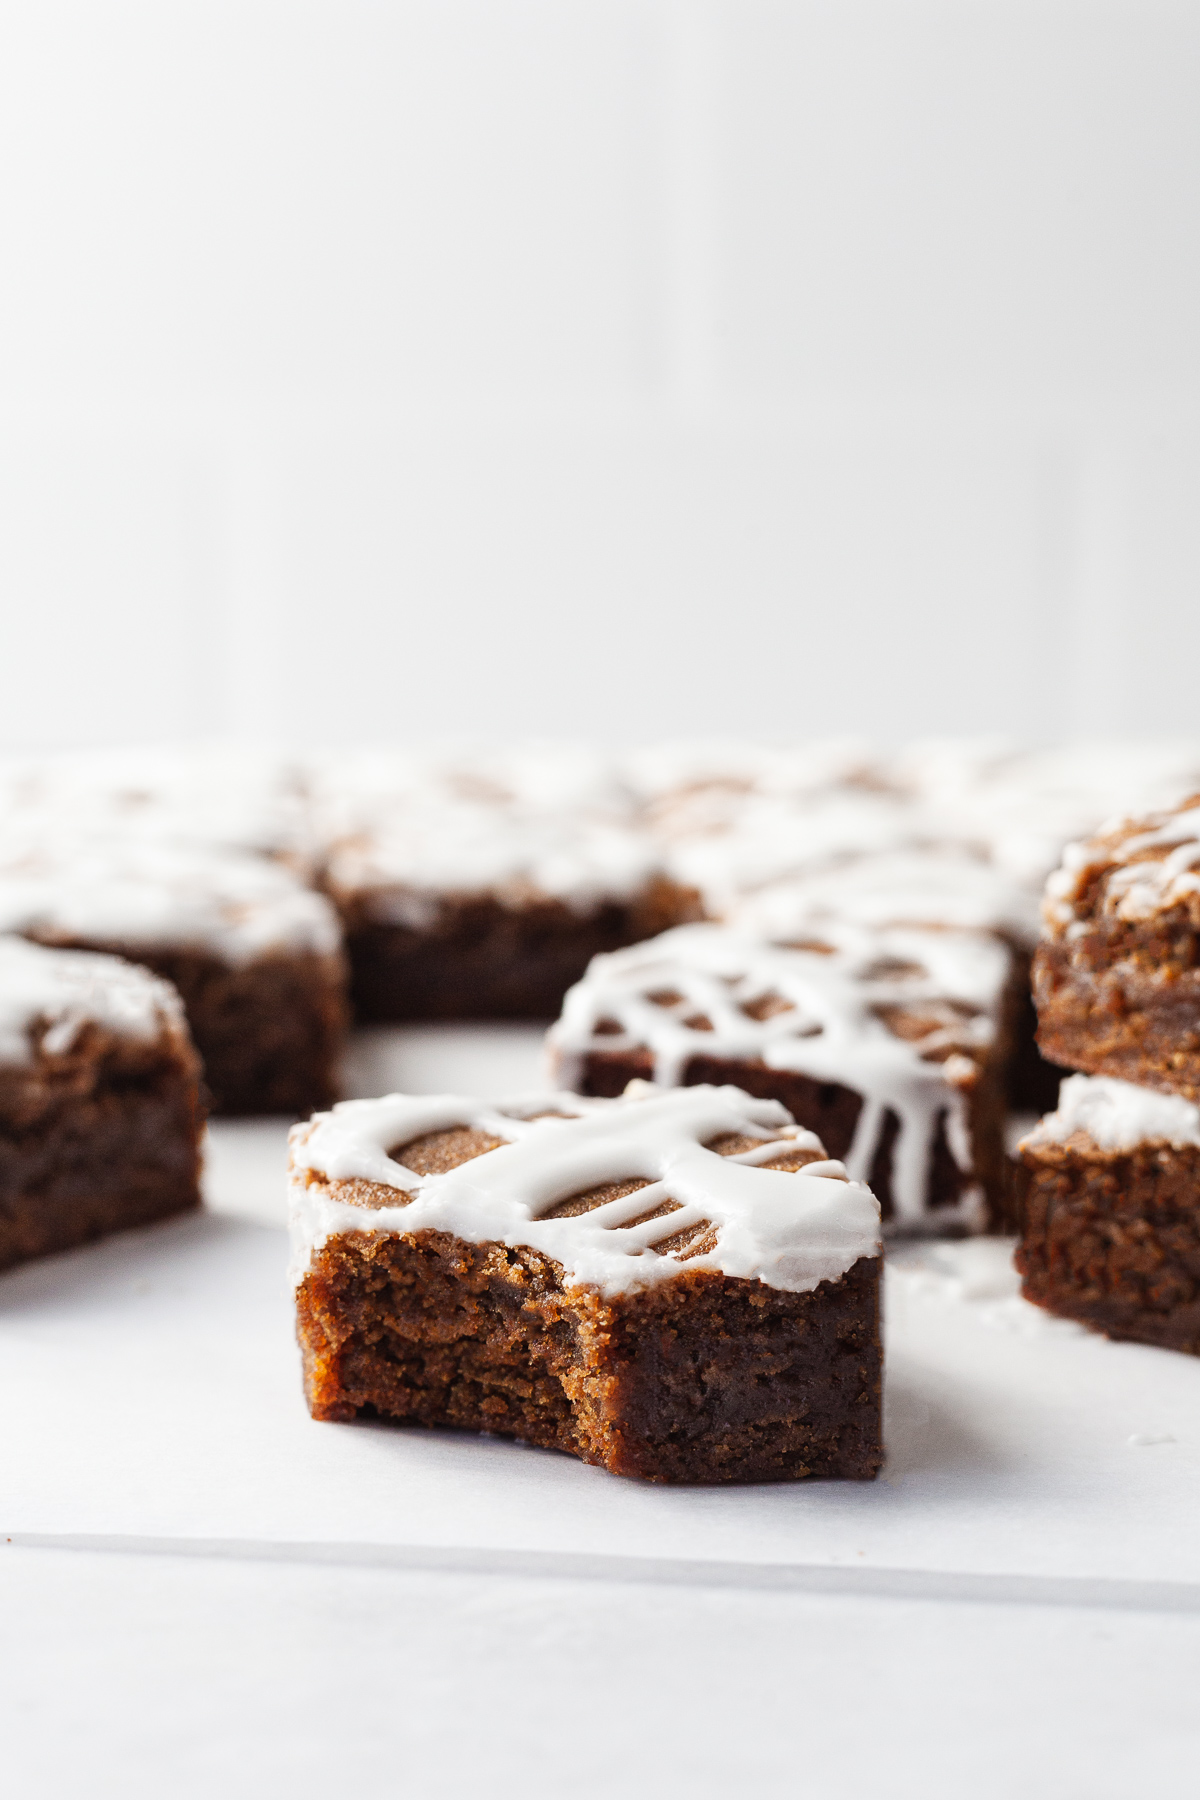 side view image of gingerbread bars cut with one bitten into